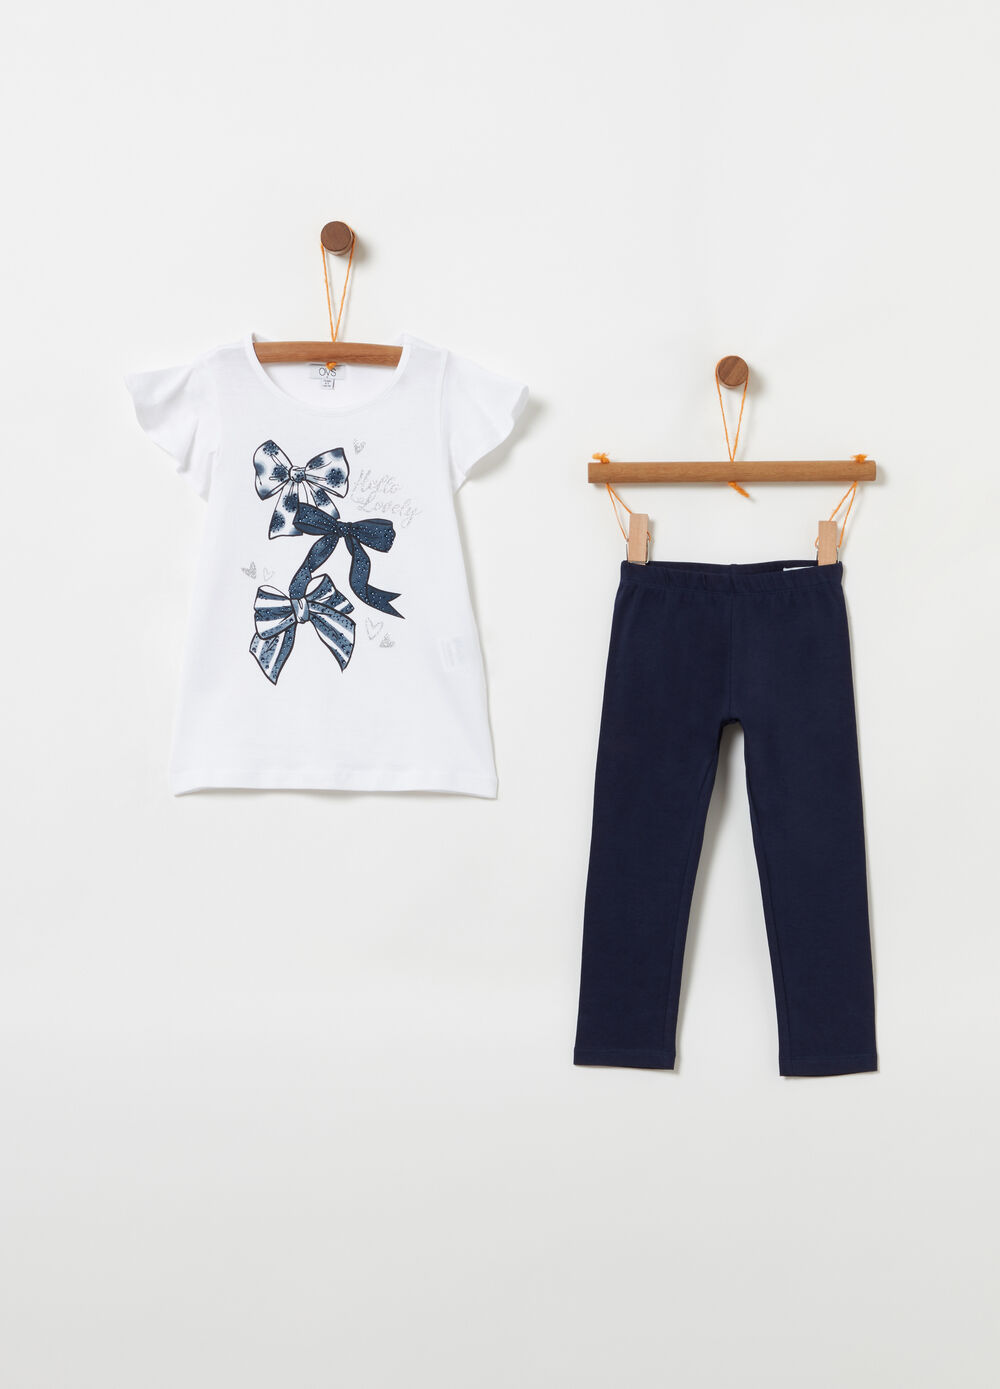 T-shirt with flounce and diamantés and leggings jogging set